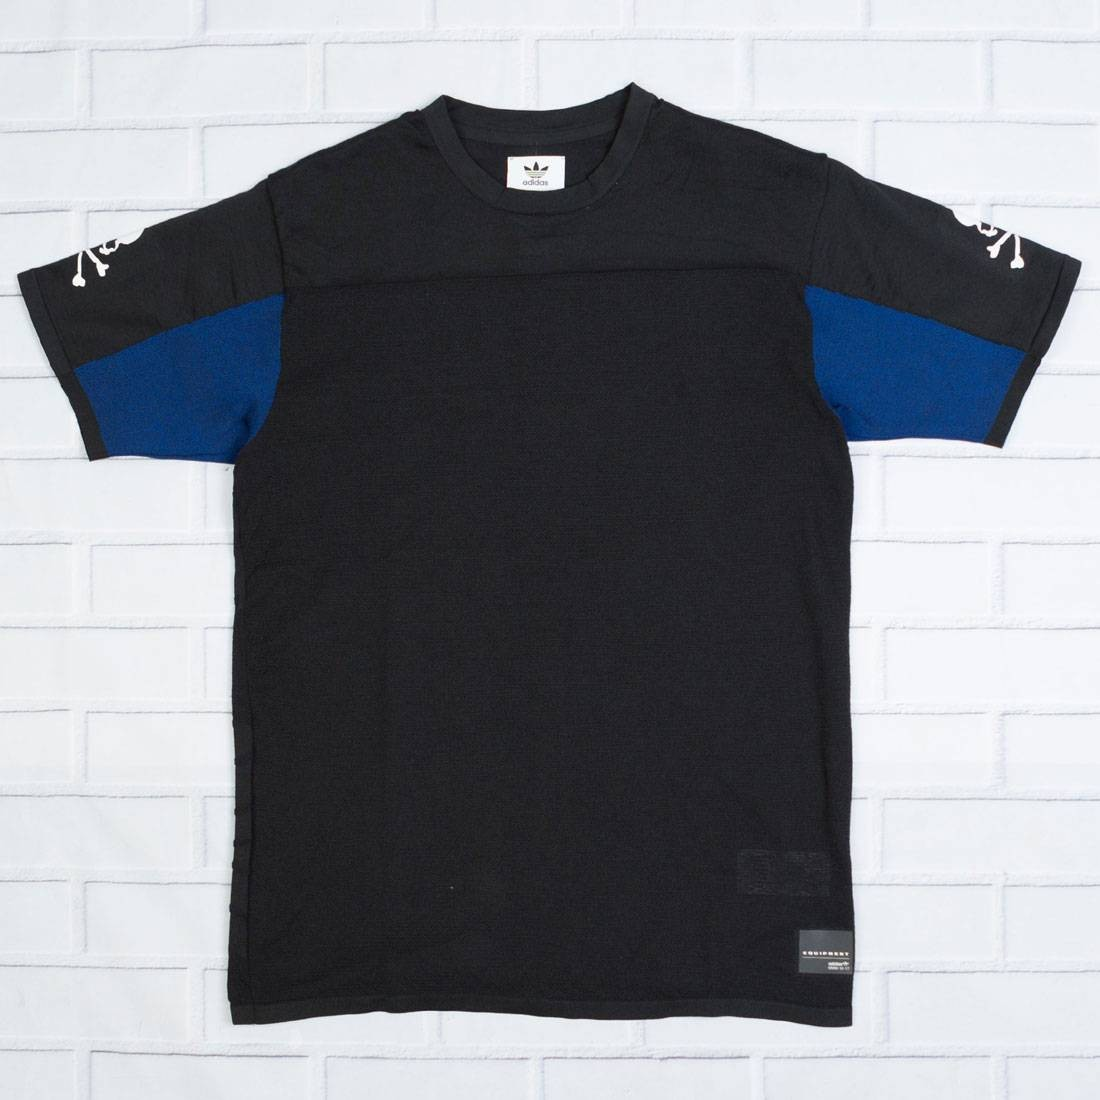 Adidas x Mastermind World Men Short Sleeve Tee (black)